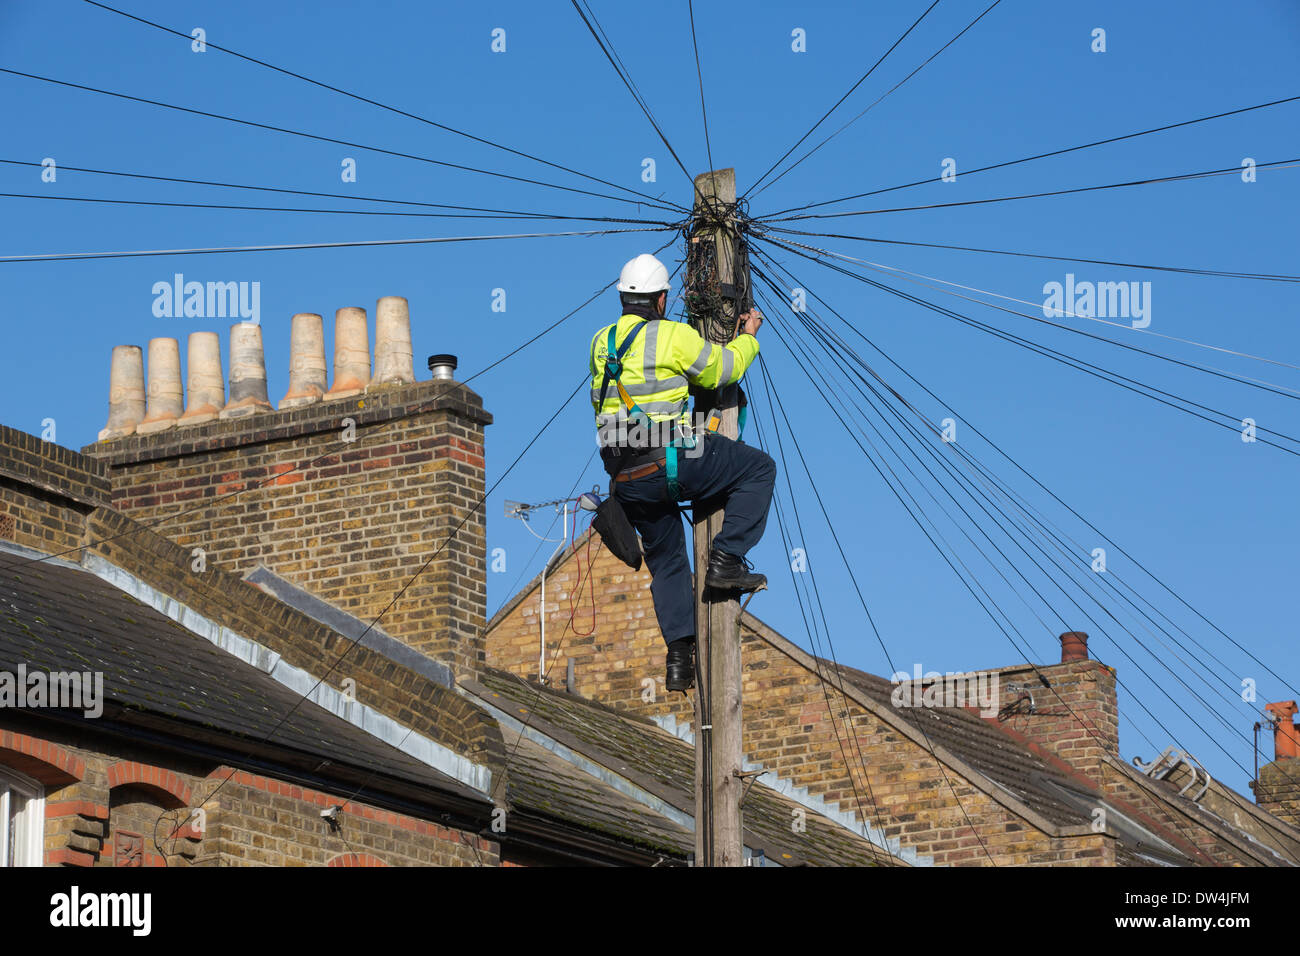 Telecommunications engineer working on an overhead telephone communications pole amongst terraced houses in London, UK - Stock Image